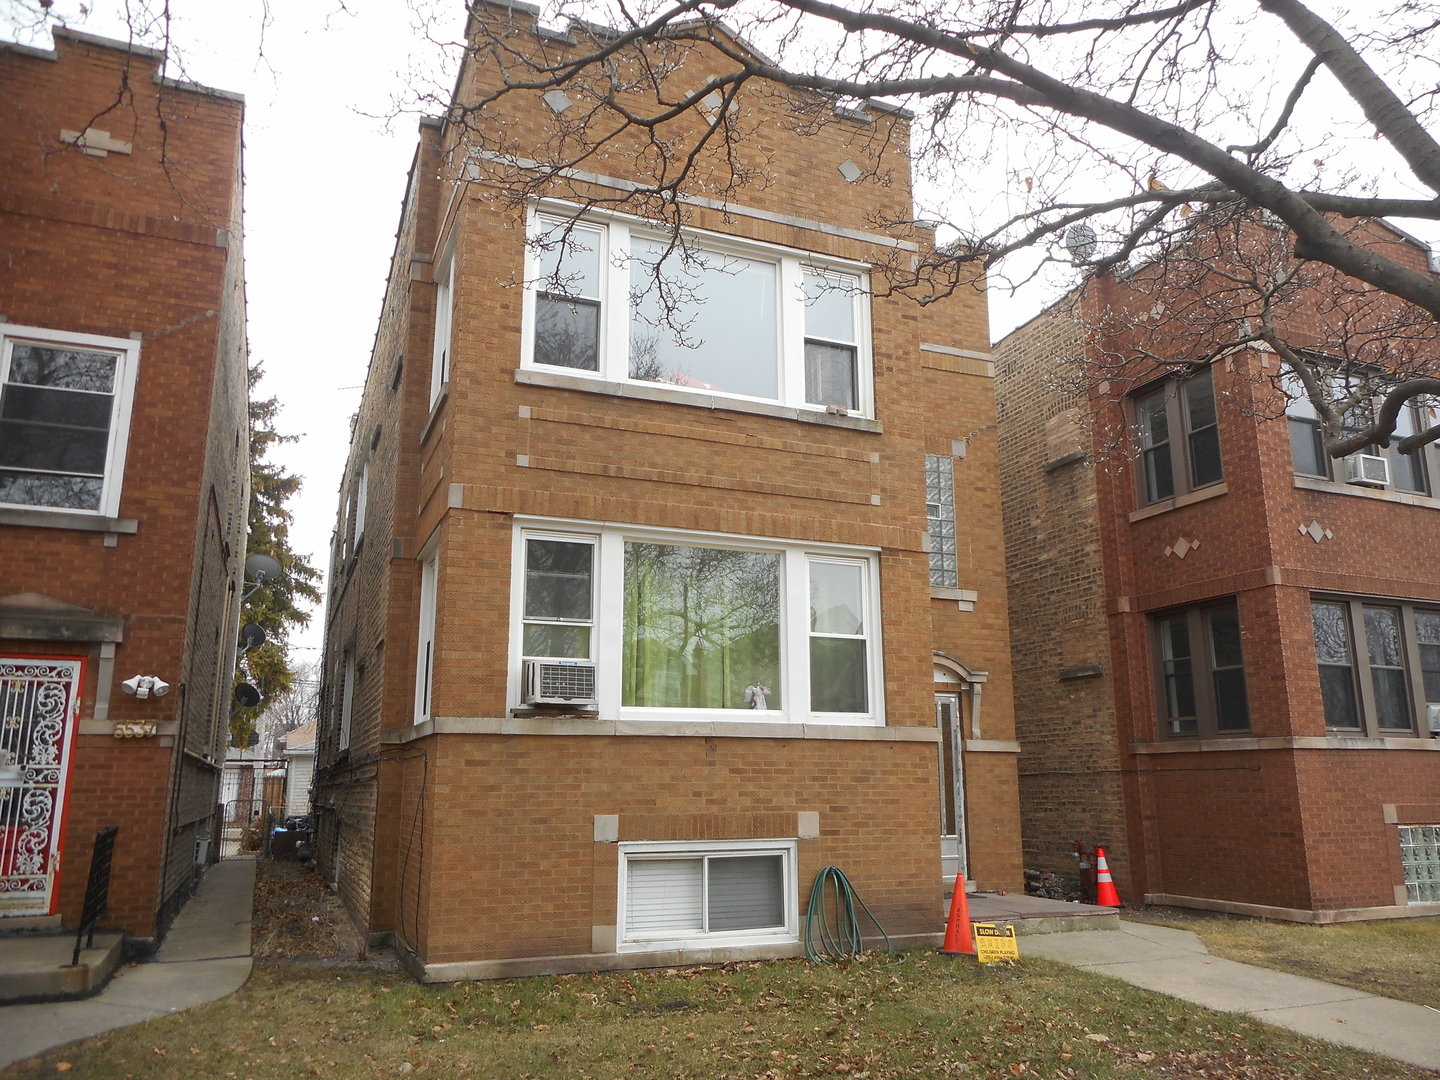 5541 School ,Chicago, Illinois 60641